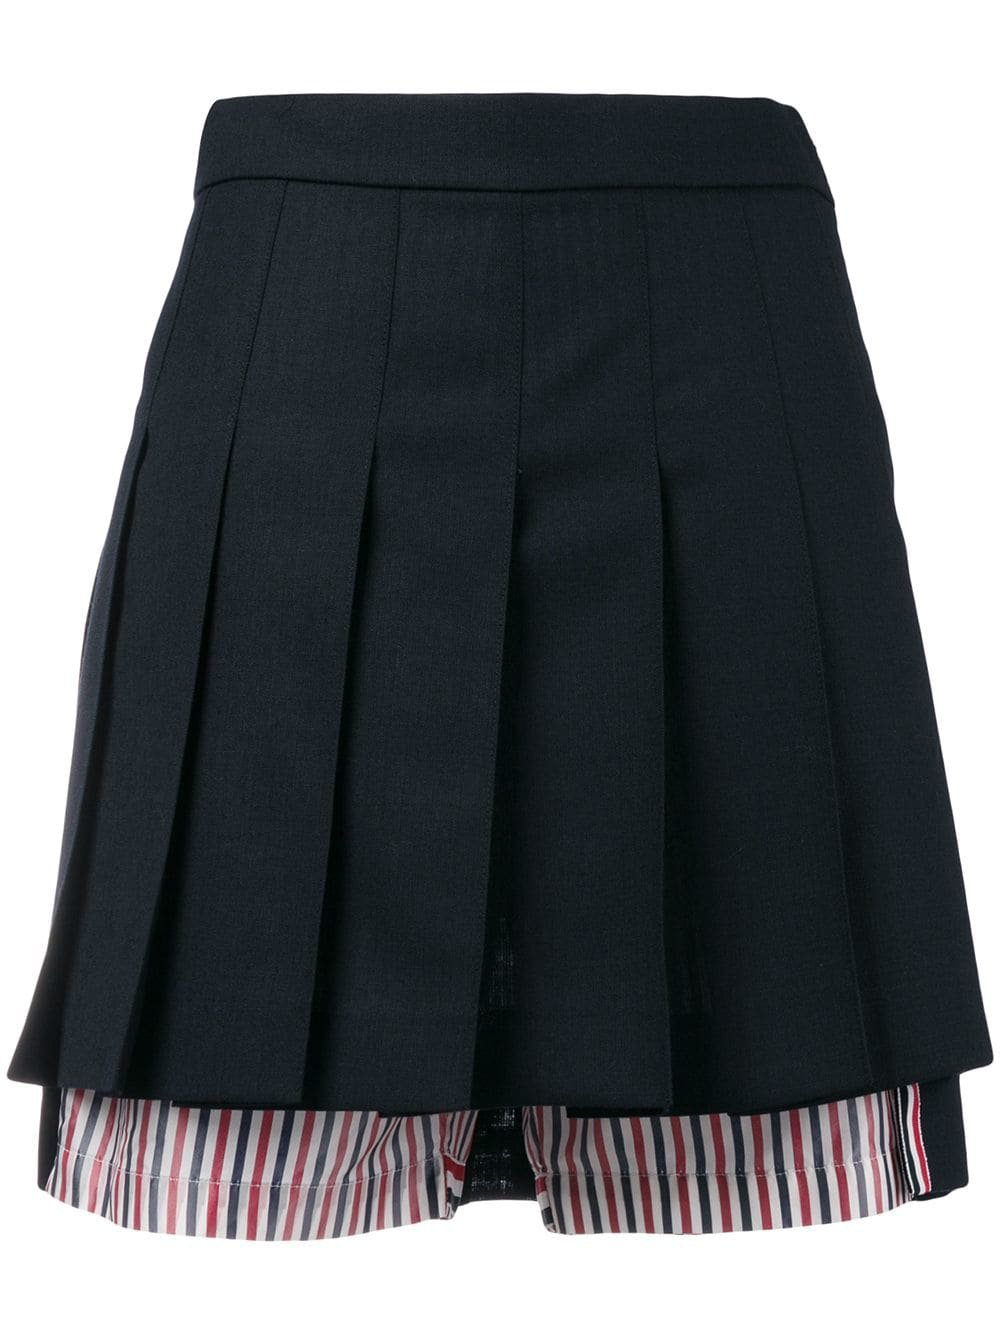 Thom BrownePleated Bloomer Miniskirt Pleated Bloomer Miniskirt £860 - Shop Online SS19. Same Day Delivery in London